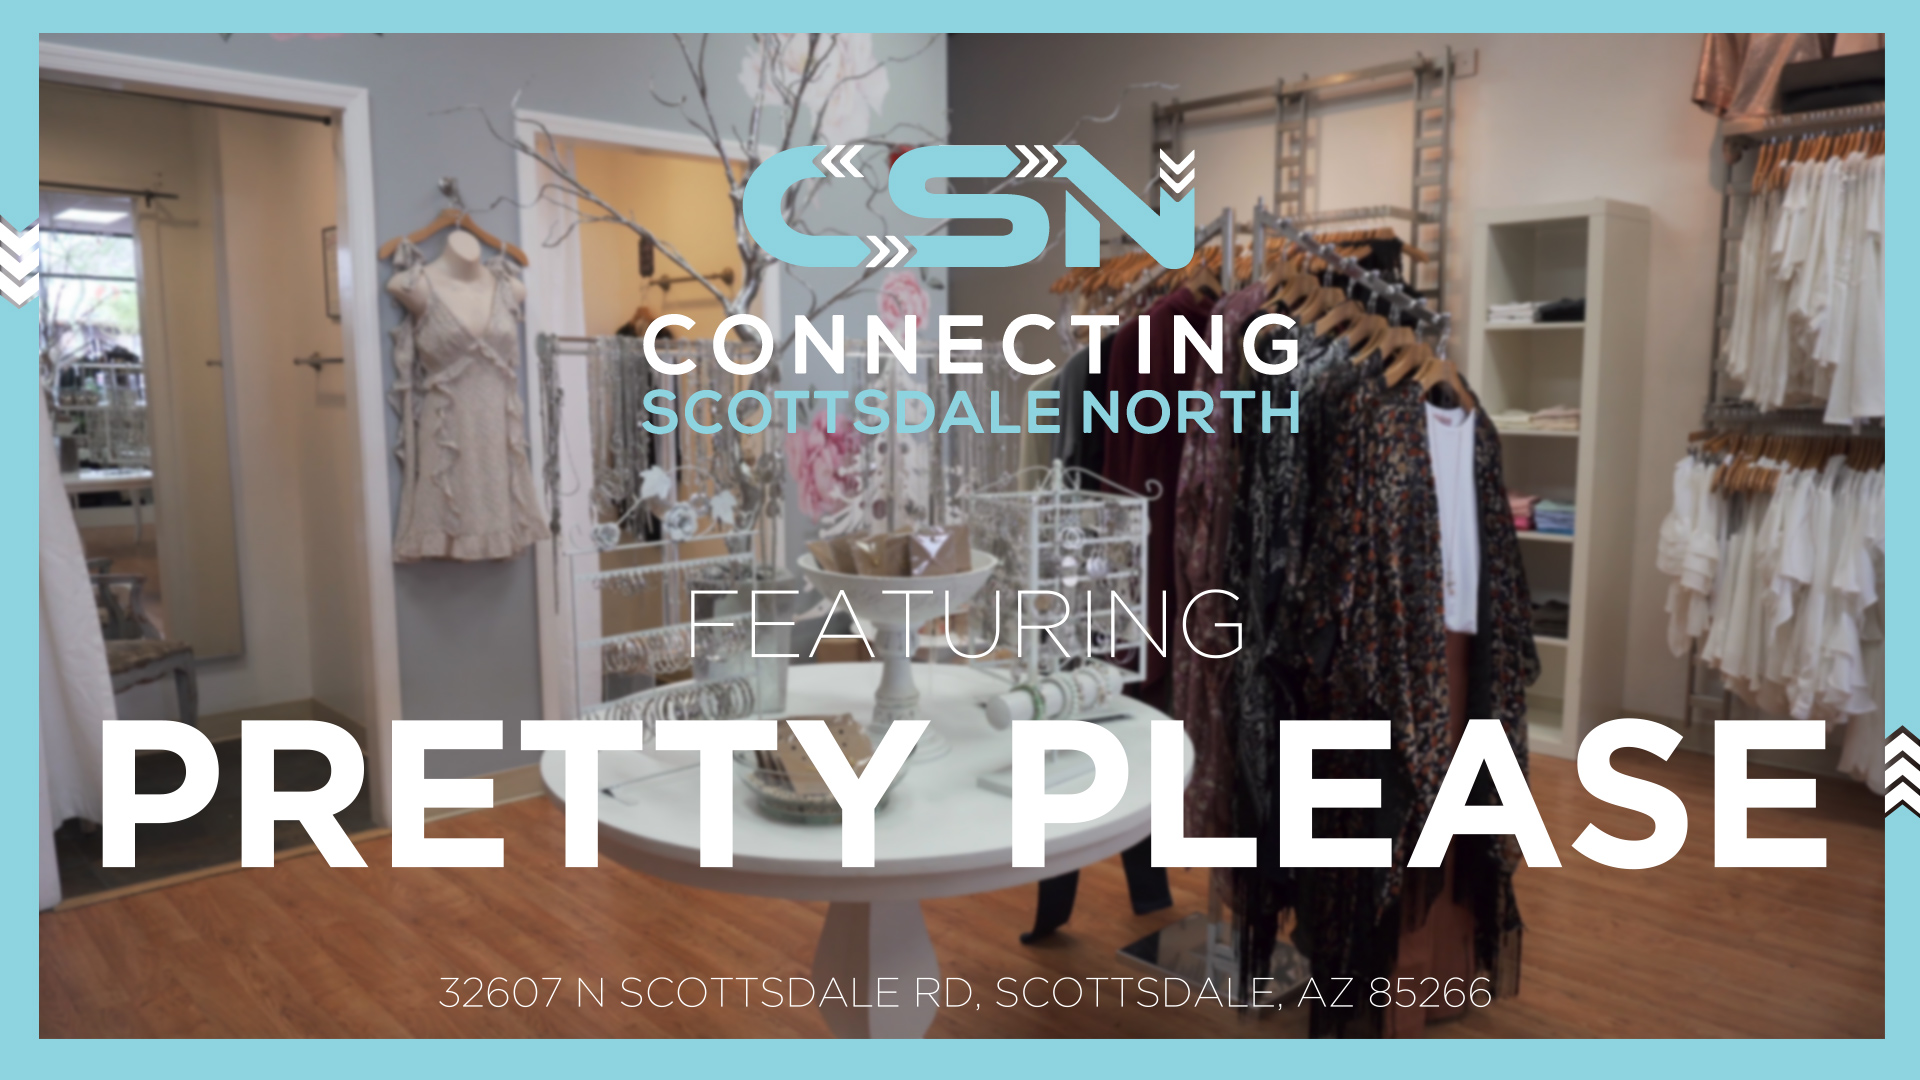 Connecting Scottsdale North Pretty Please